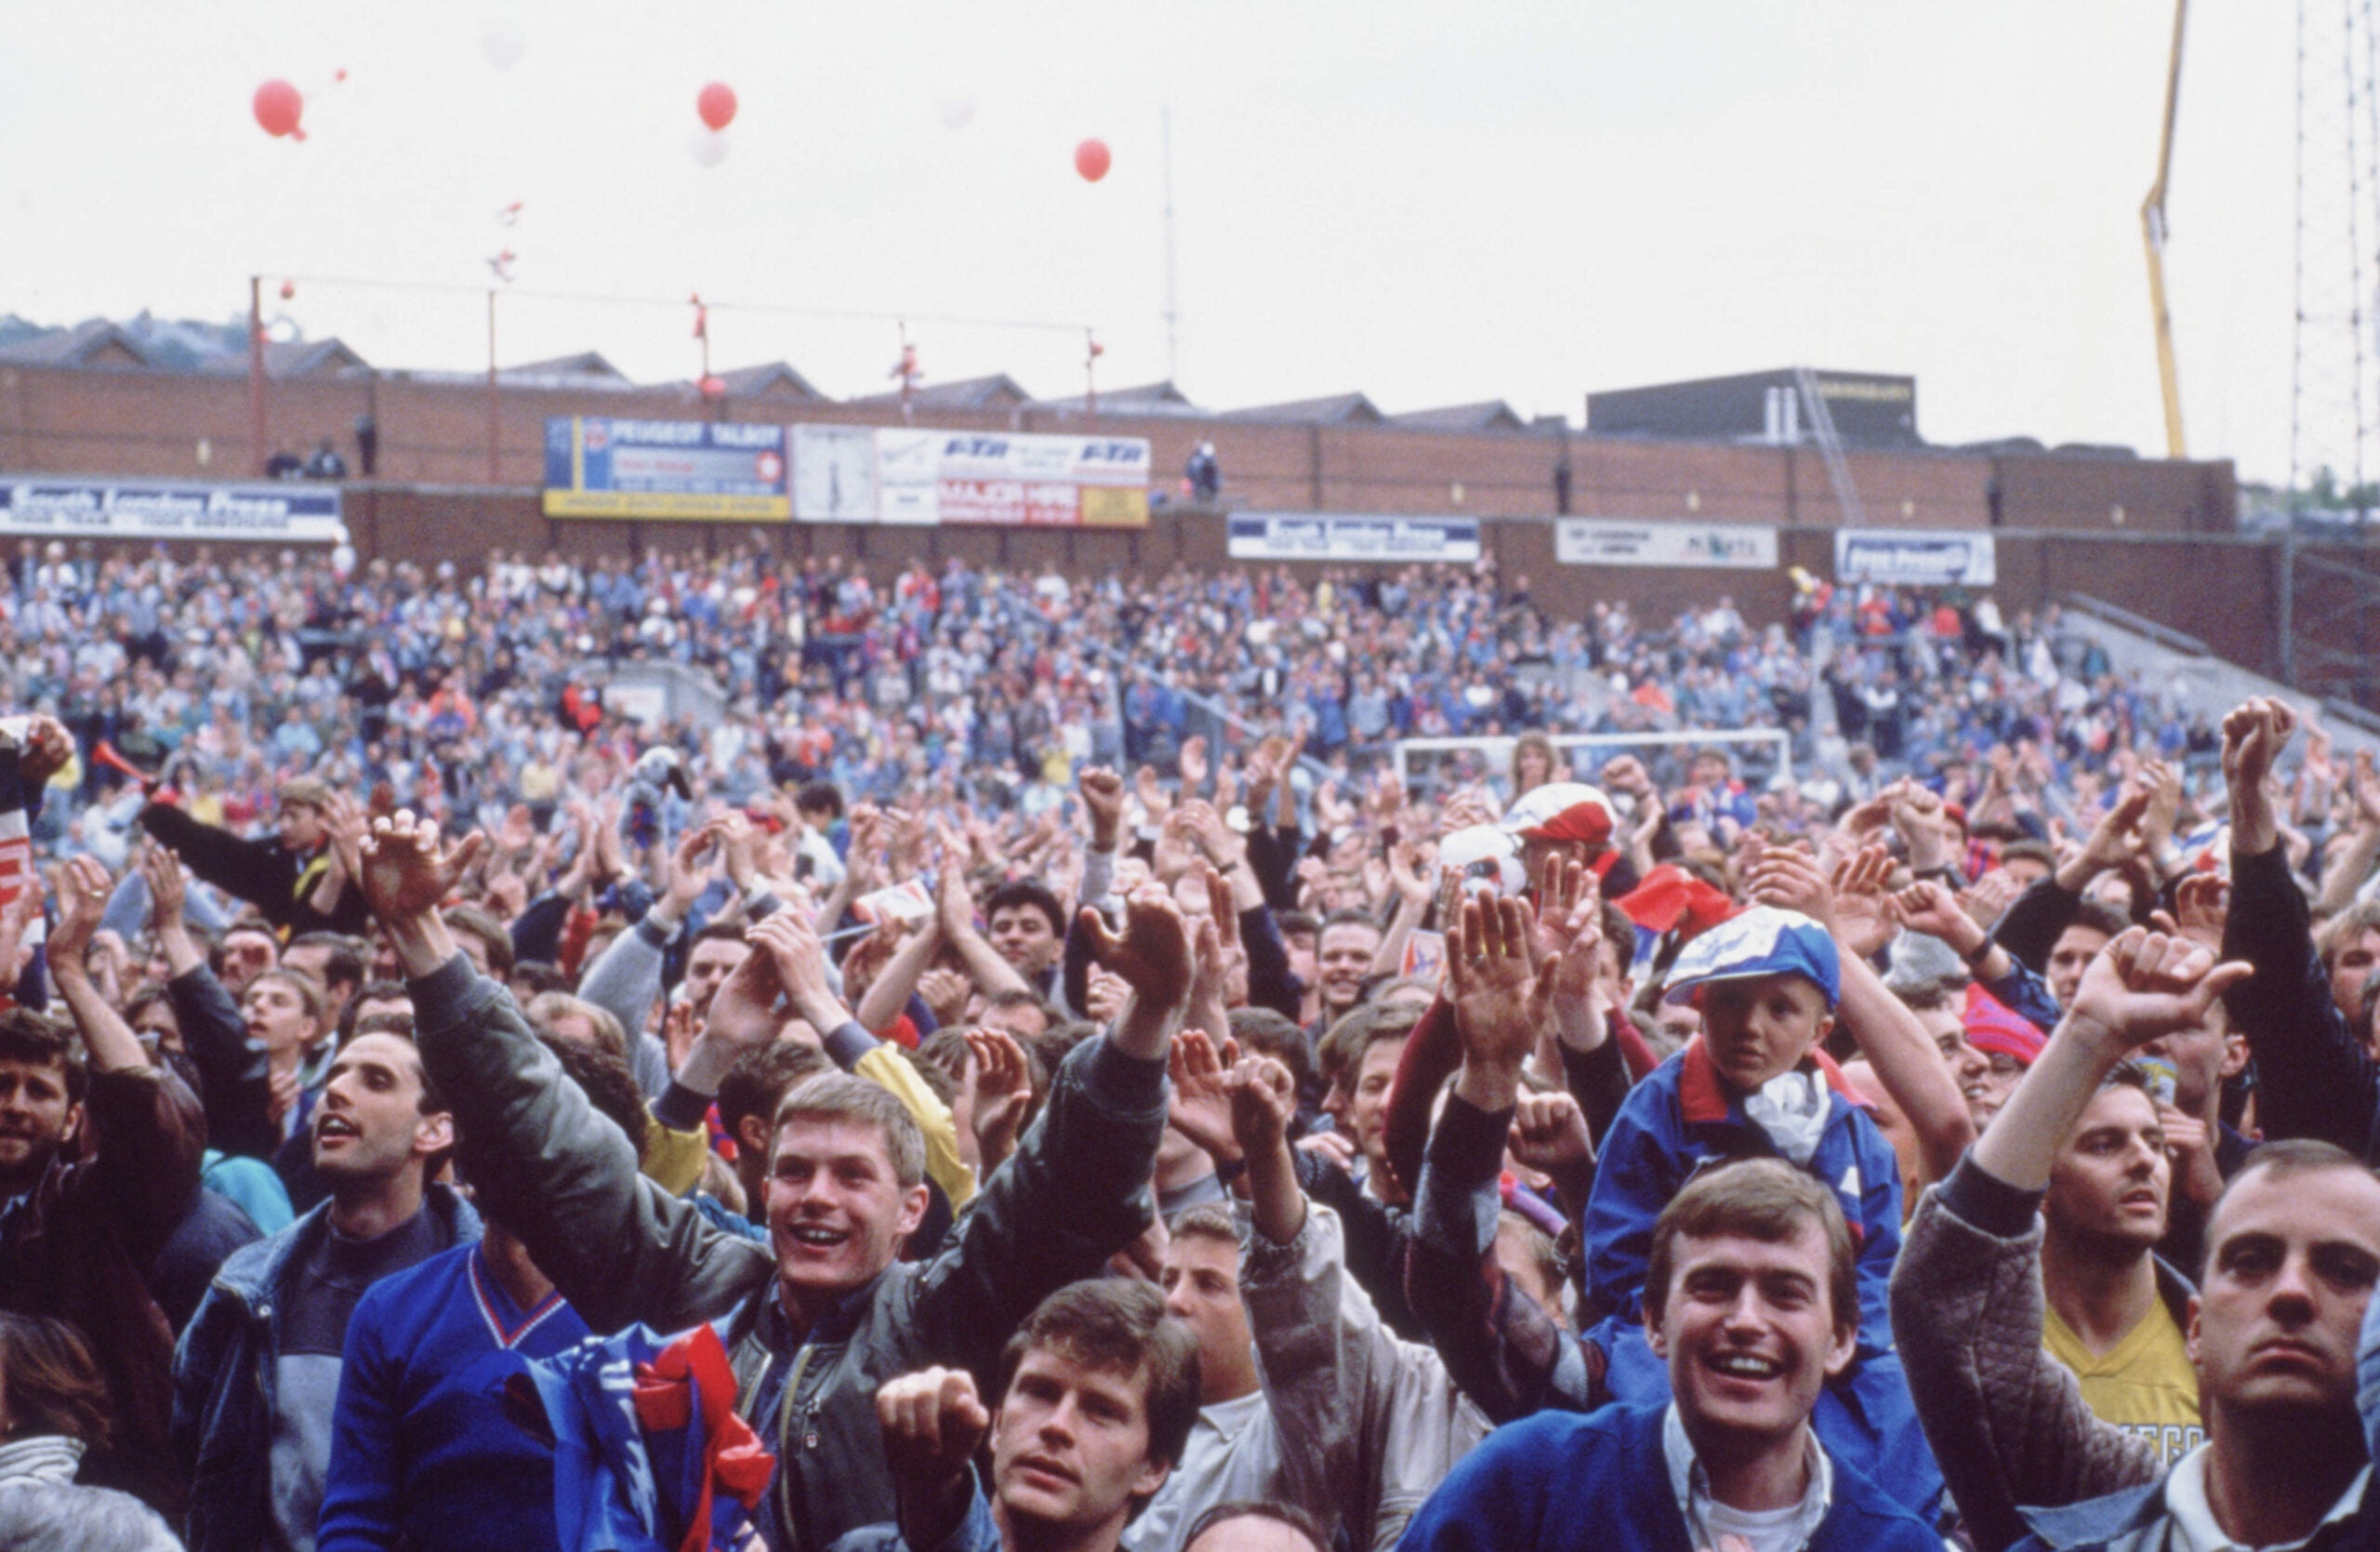 Priced out of matches and treated as commodities, football fans are finally starting to reclaim the beautiful game